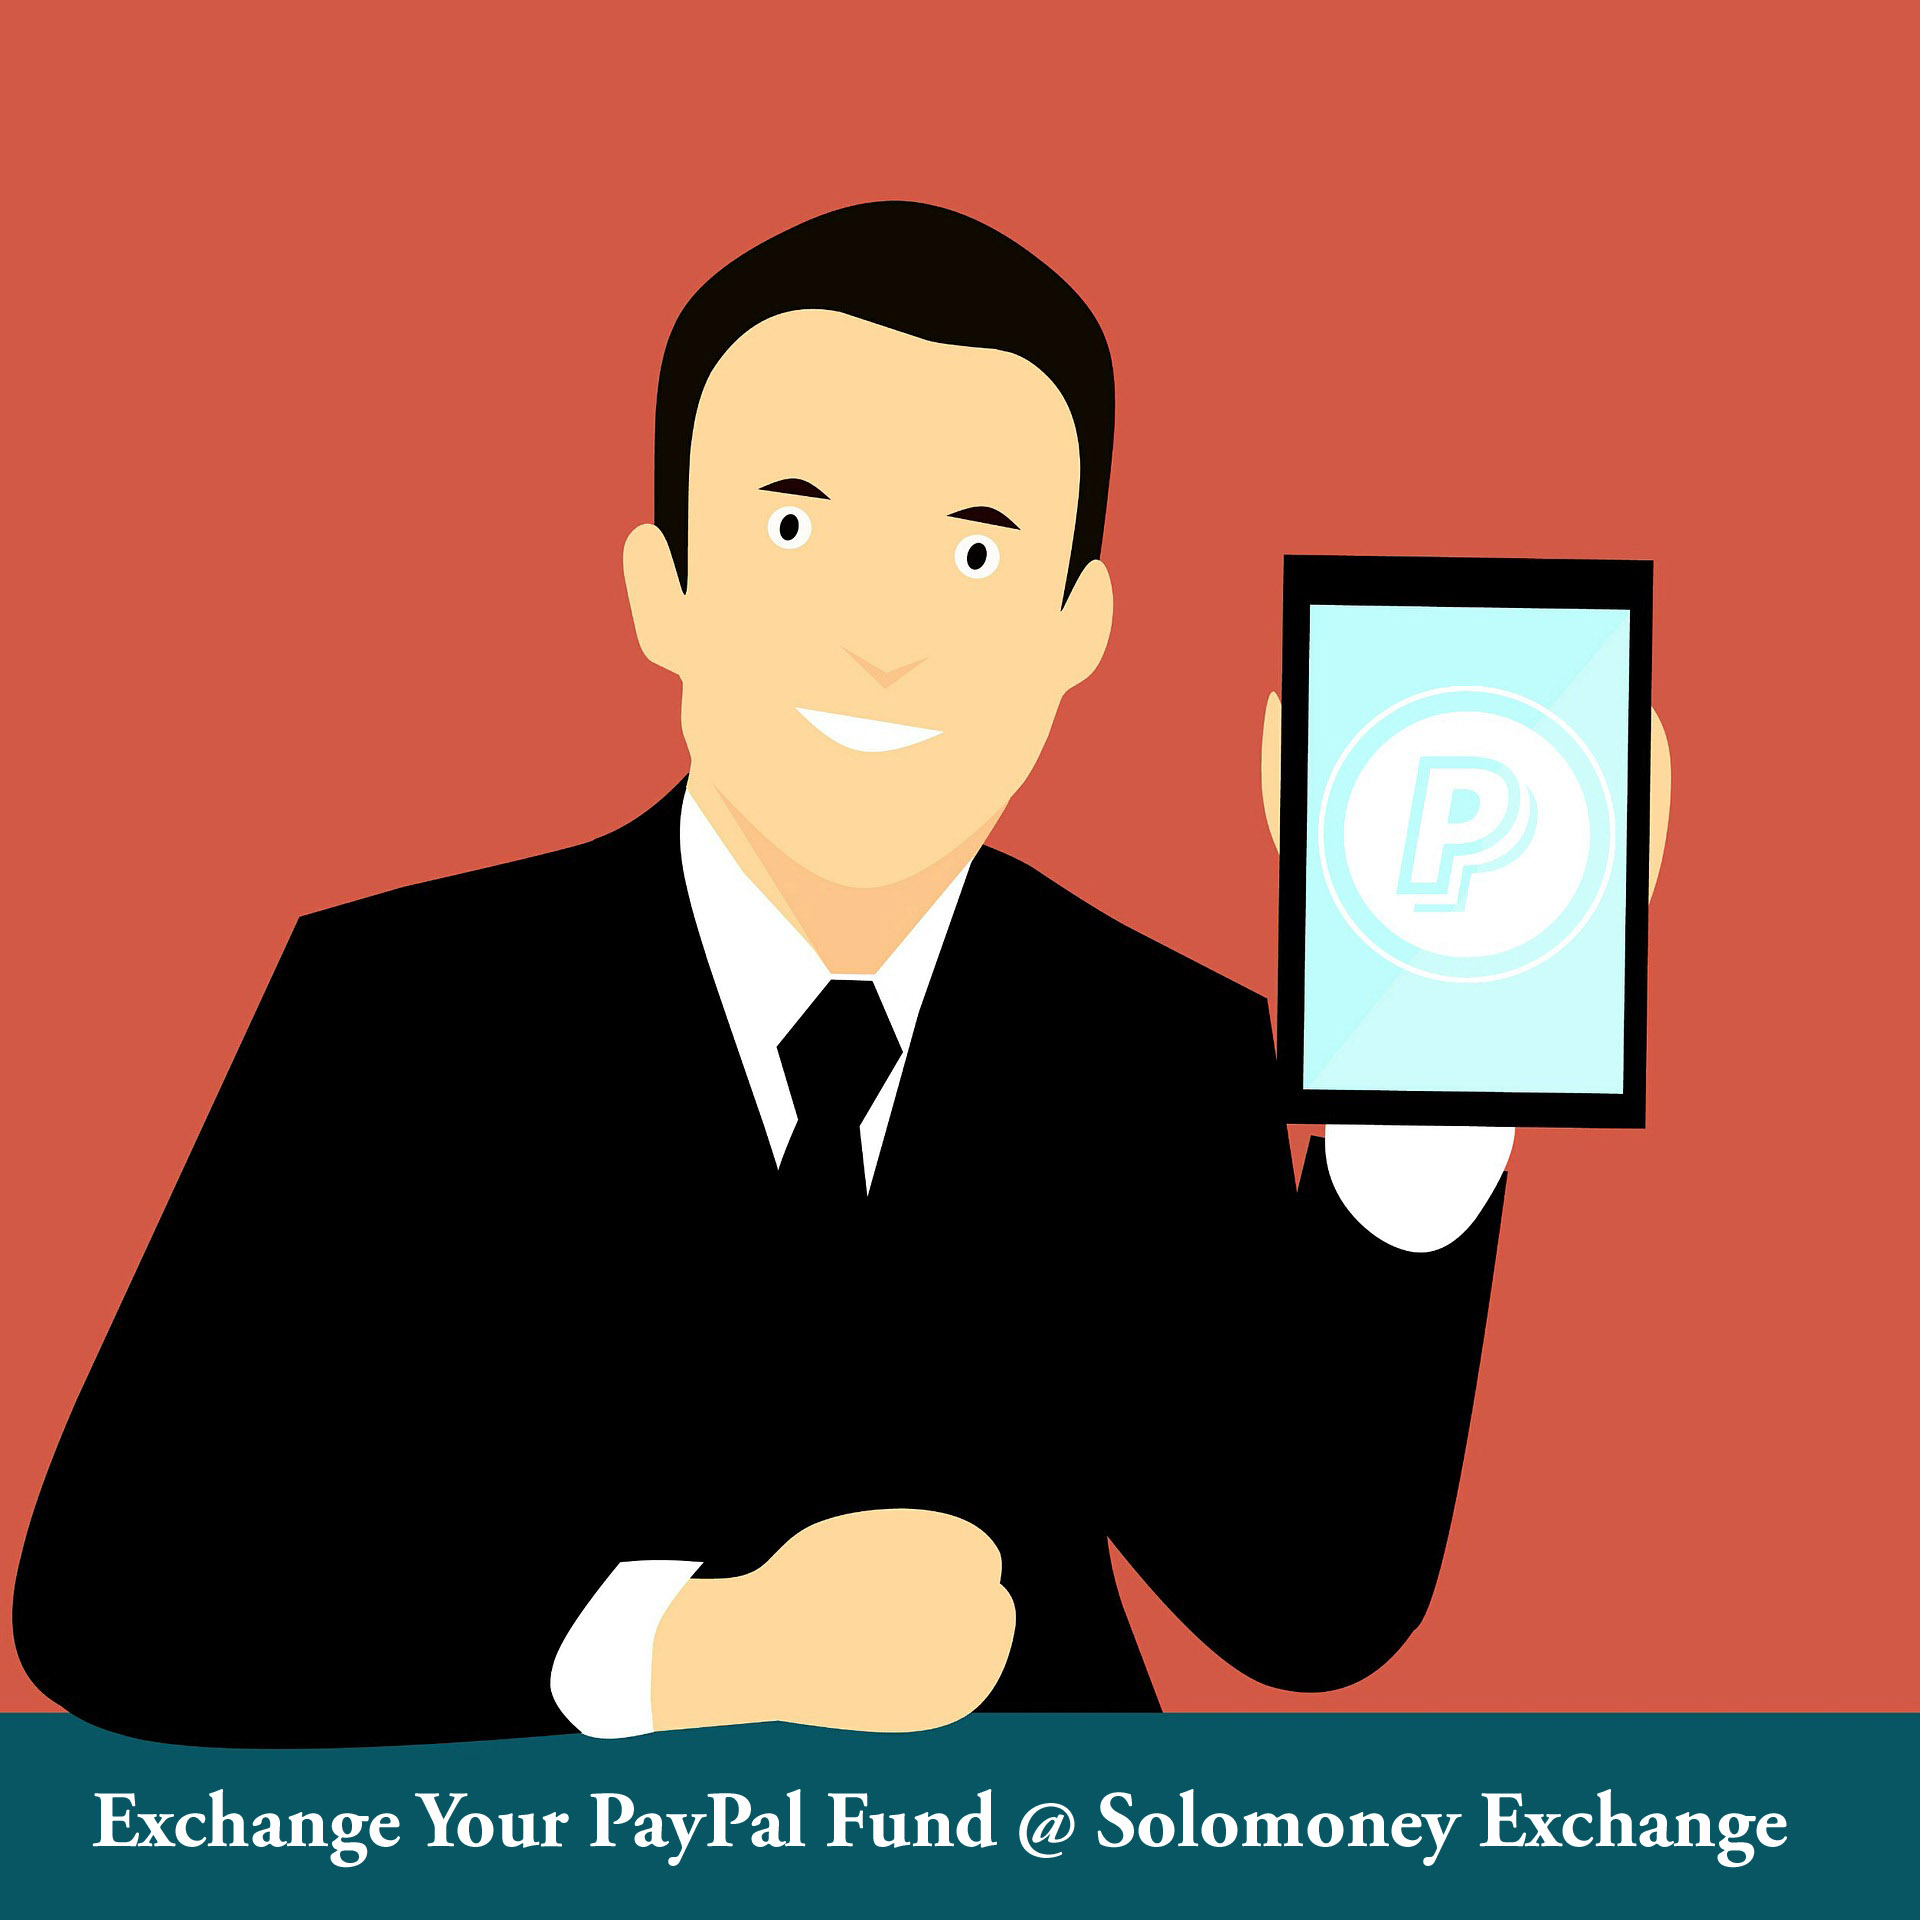 PayPal Exchanger Nigeria How To Buy and Sell PayPal Fund